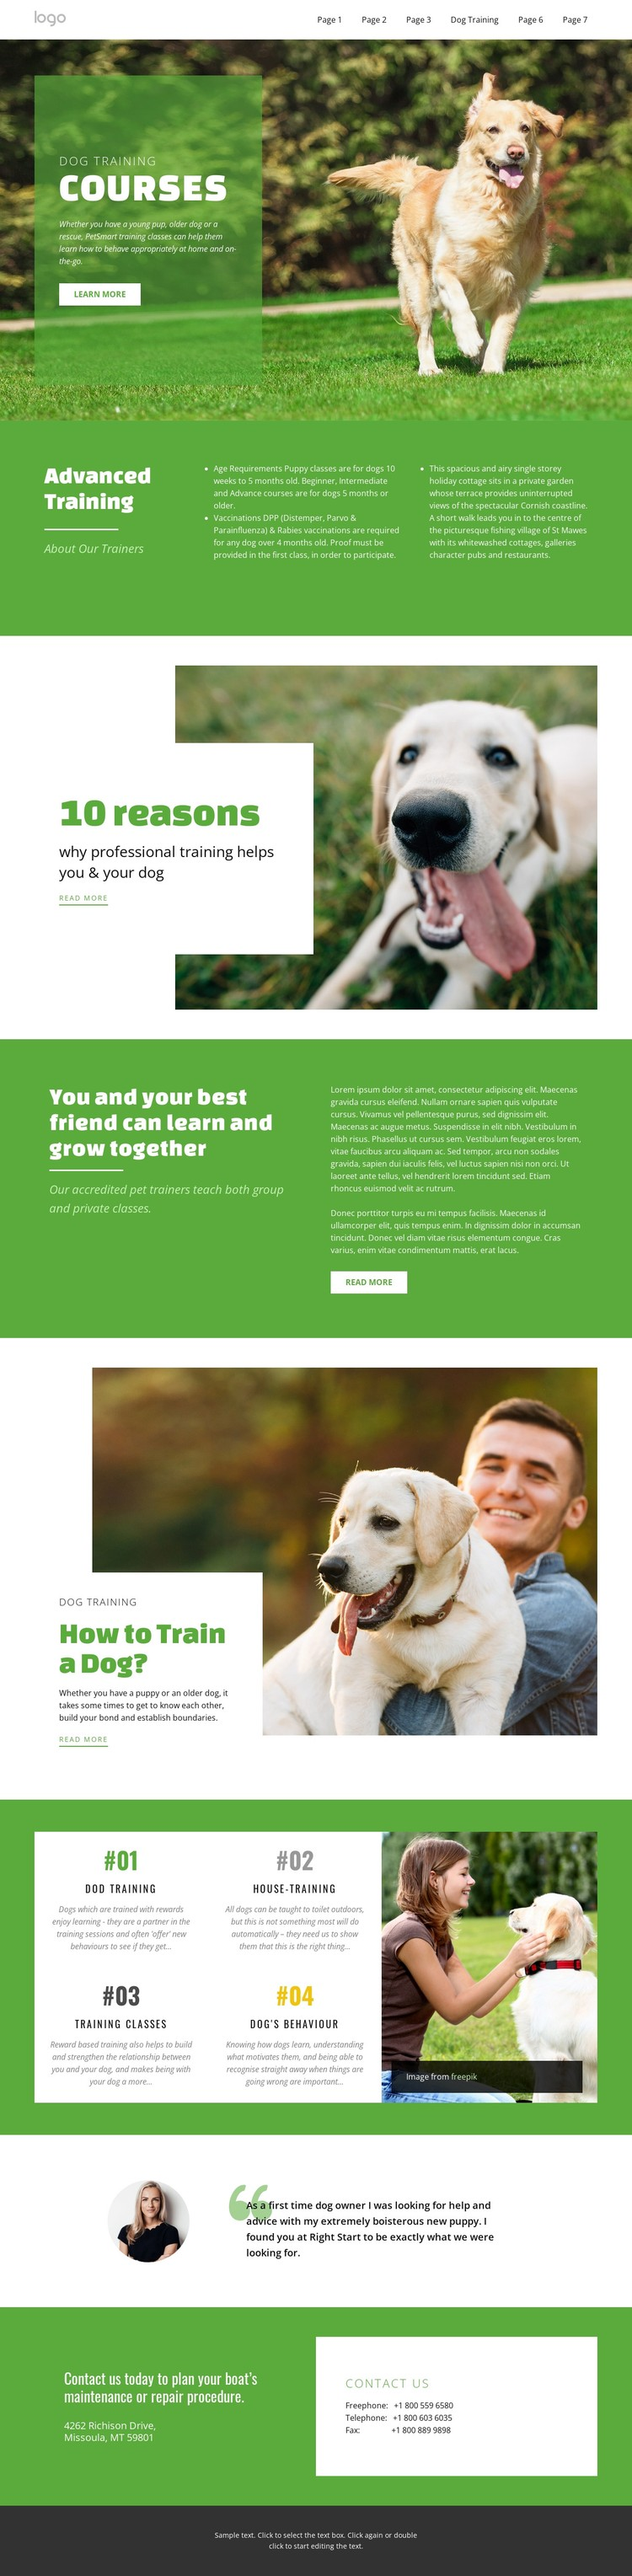 Training courses for pets Static Site Generator